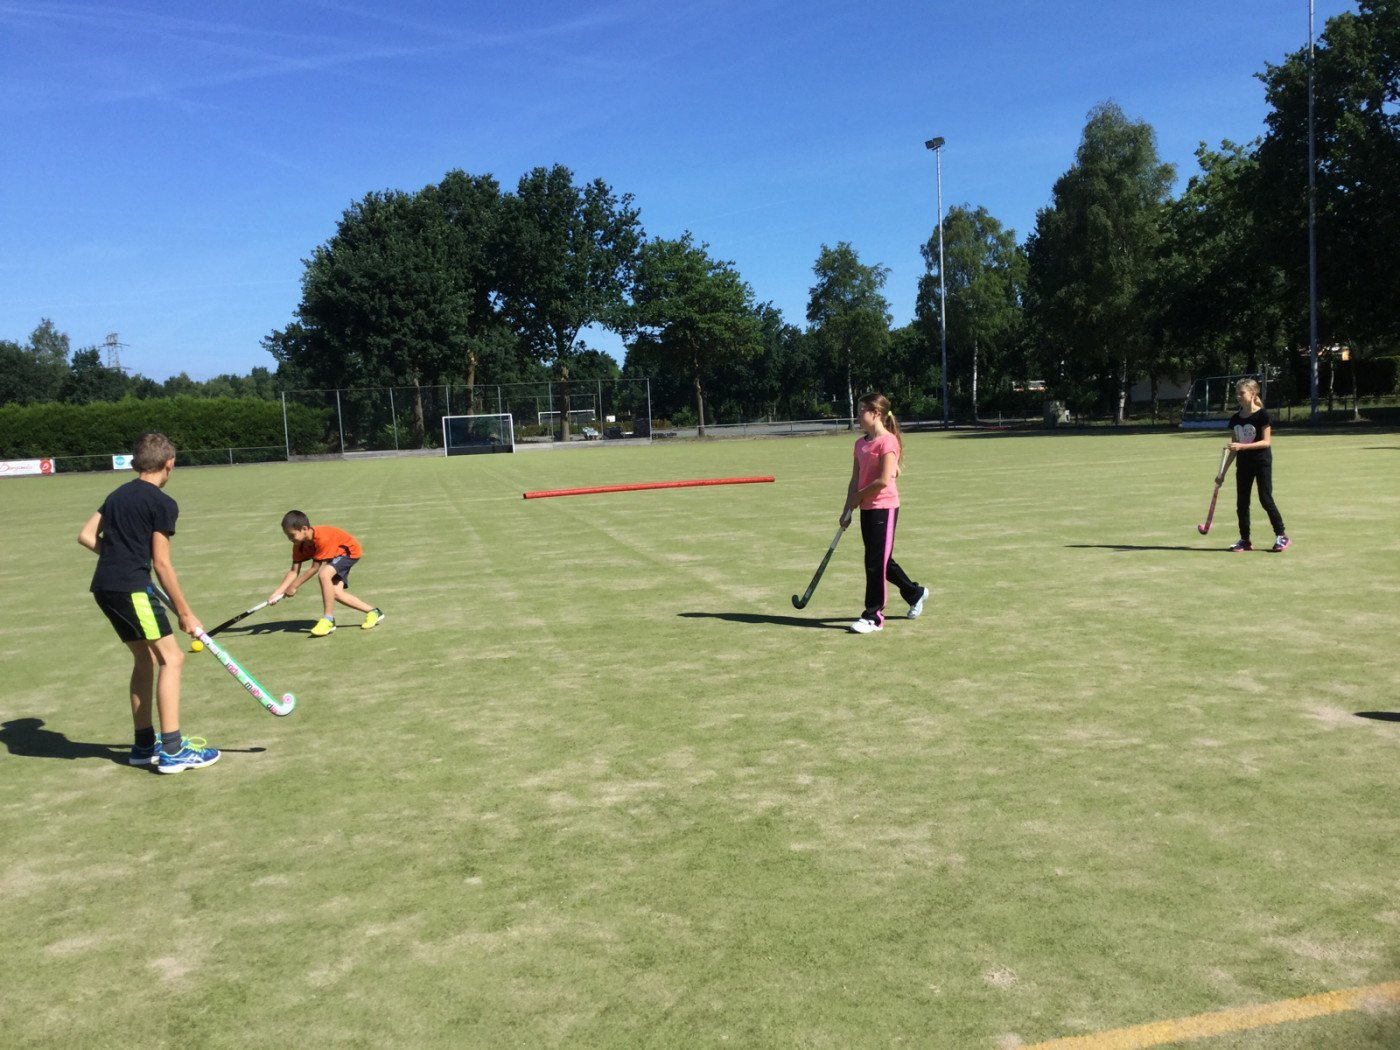 Hockey op de hockeyvelden in Maarheeze